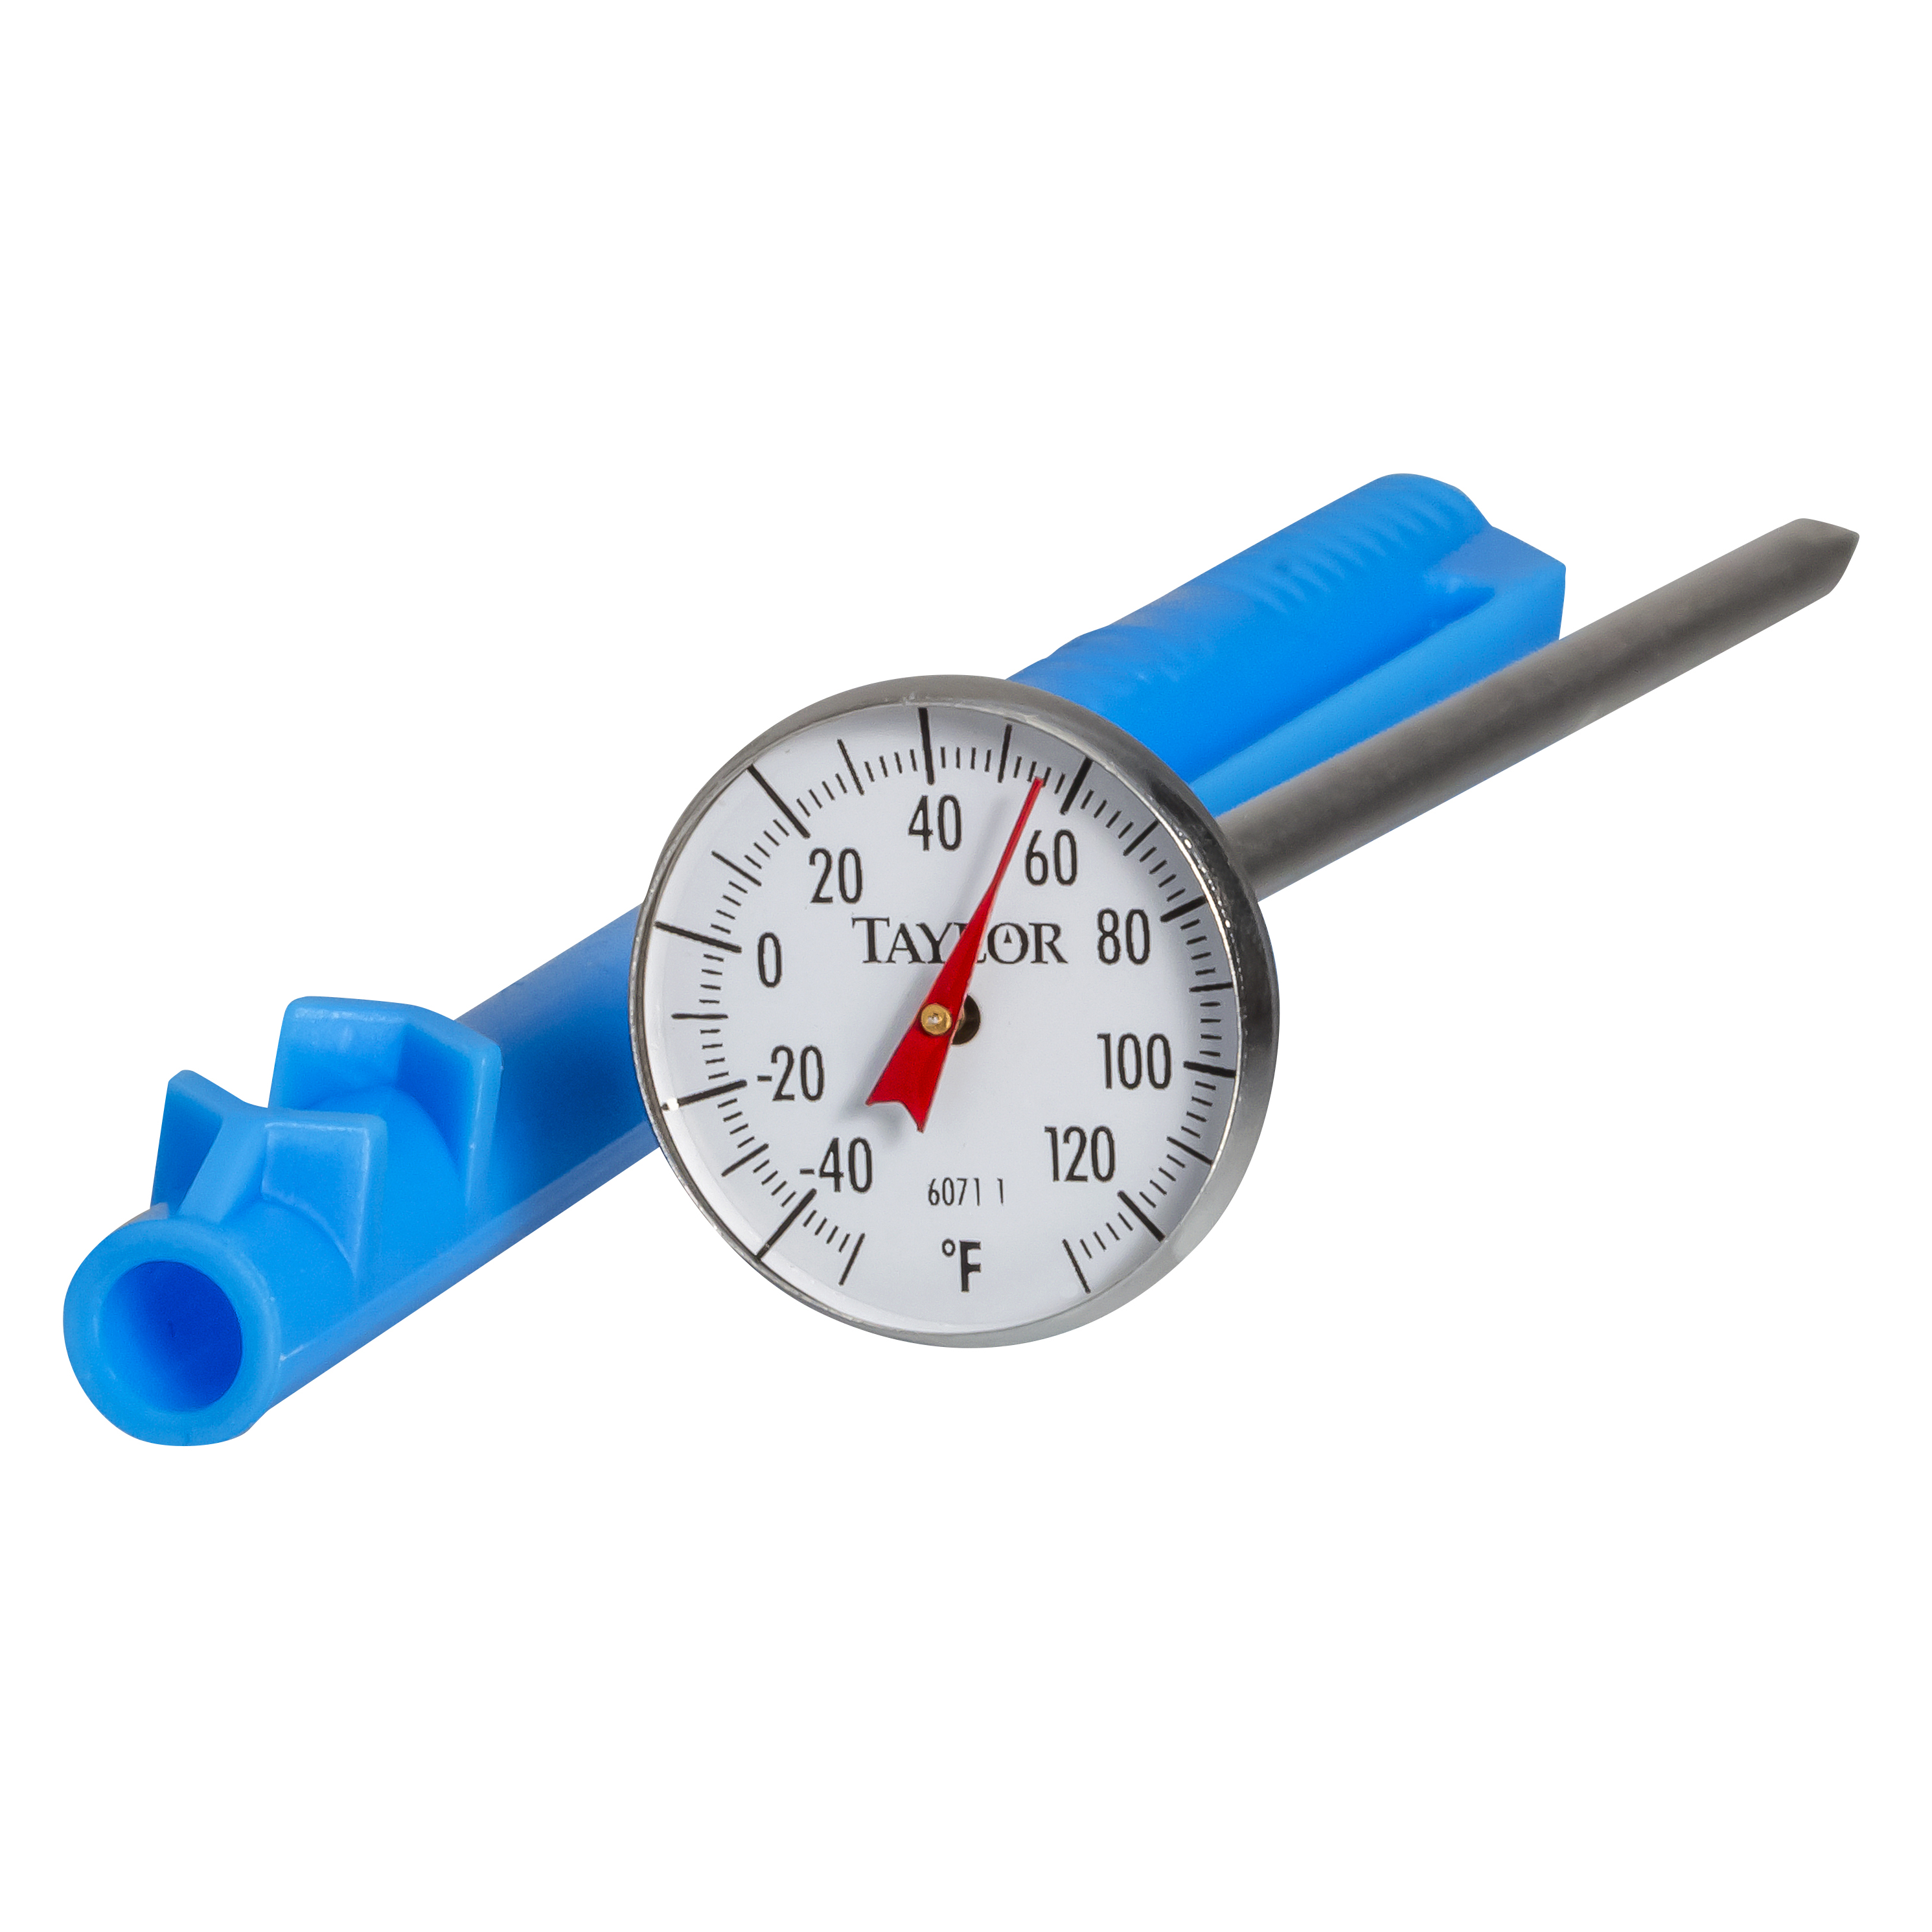 Taylor Precision 6071 thermometer, pocket